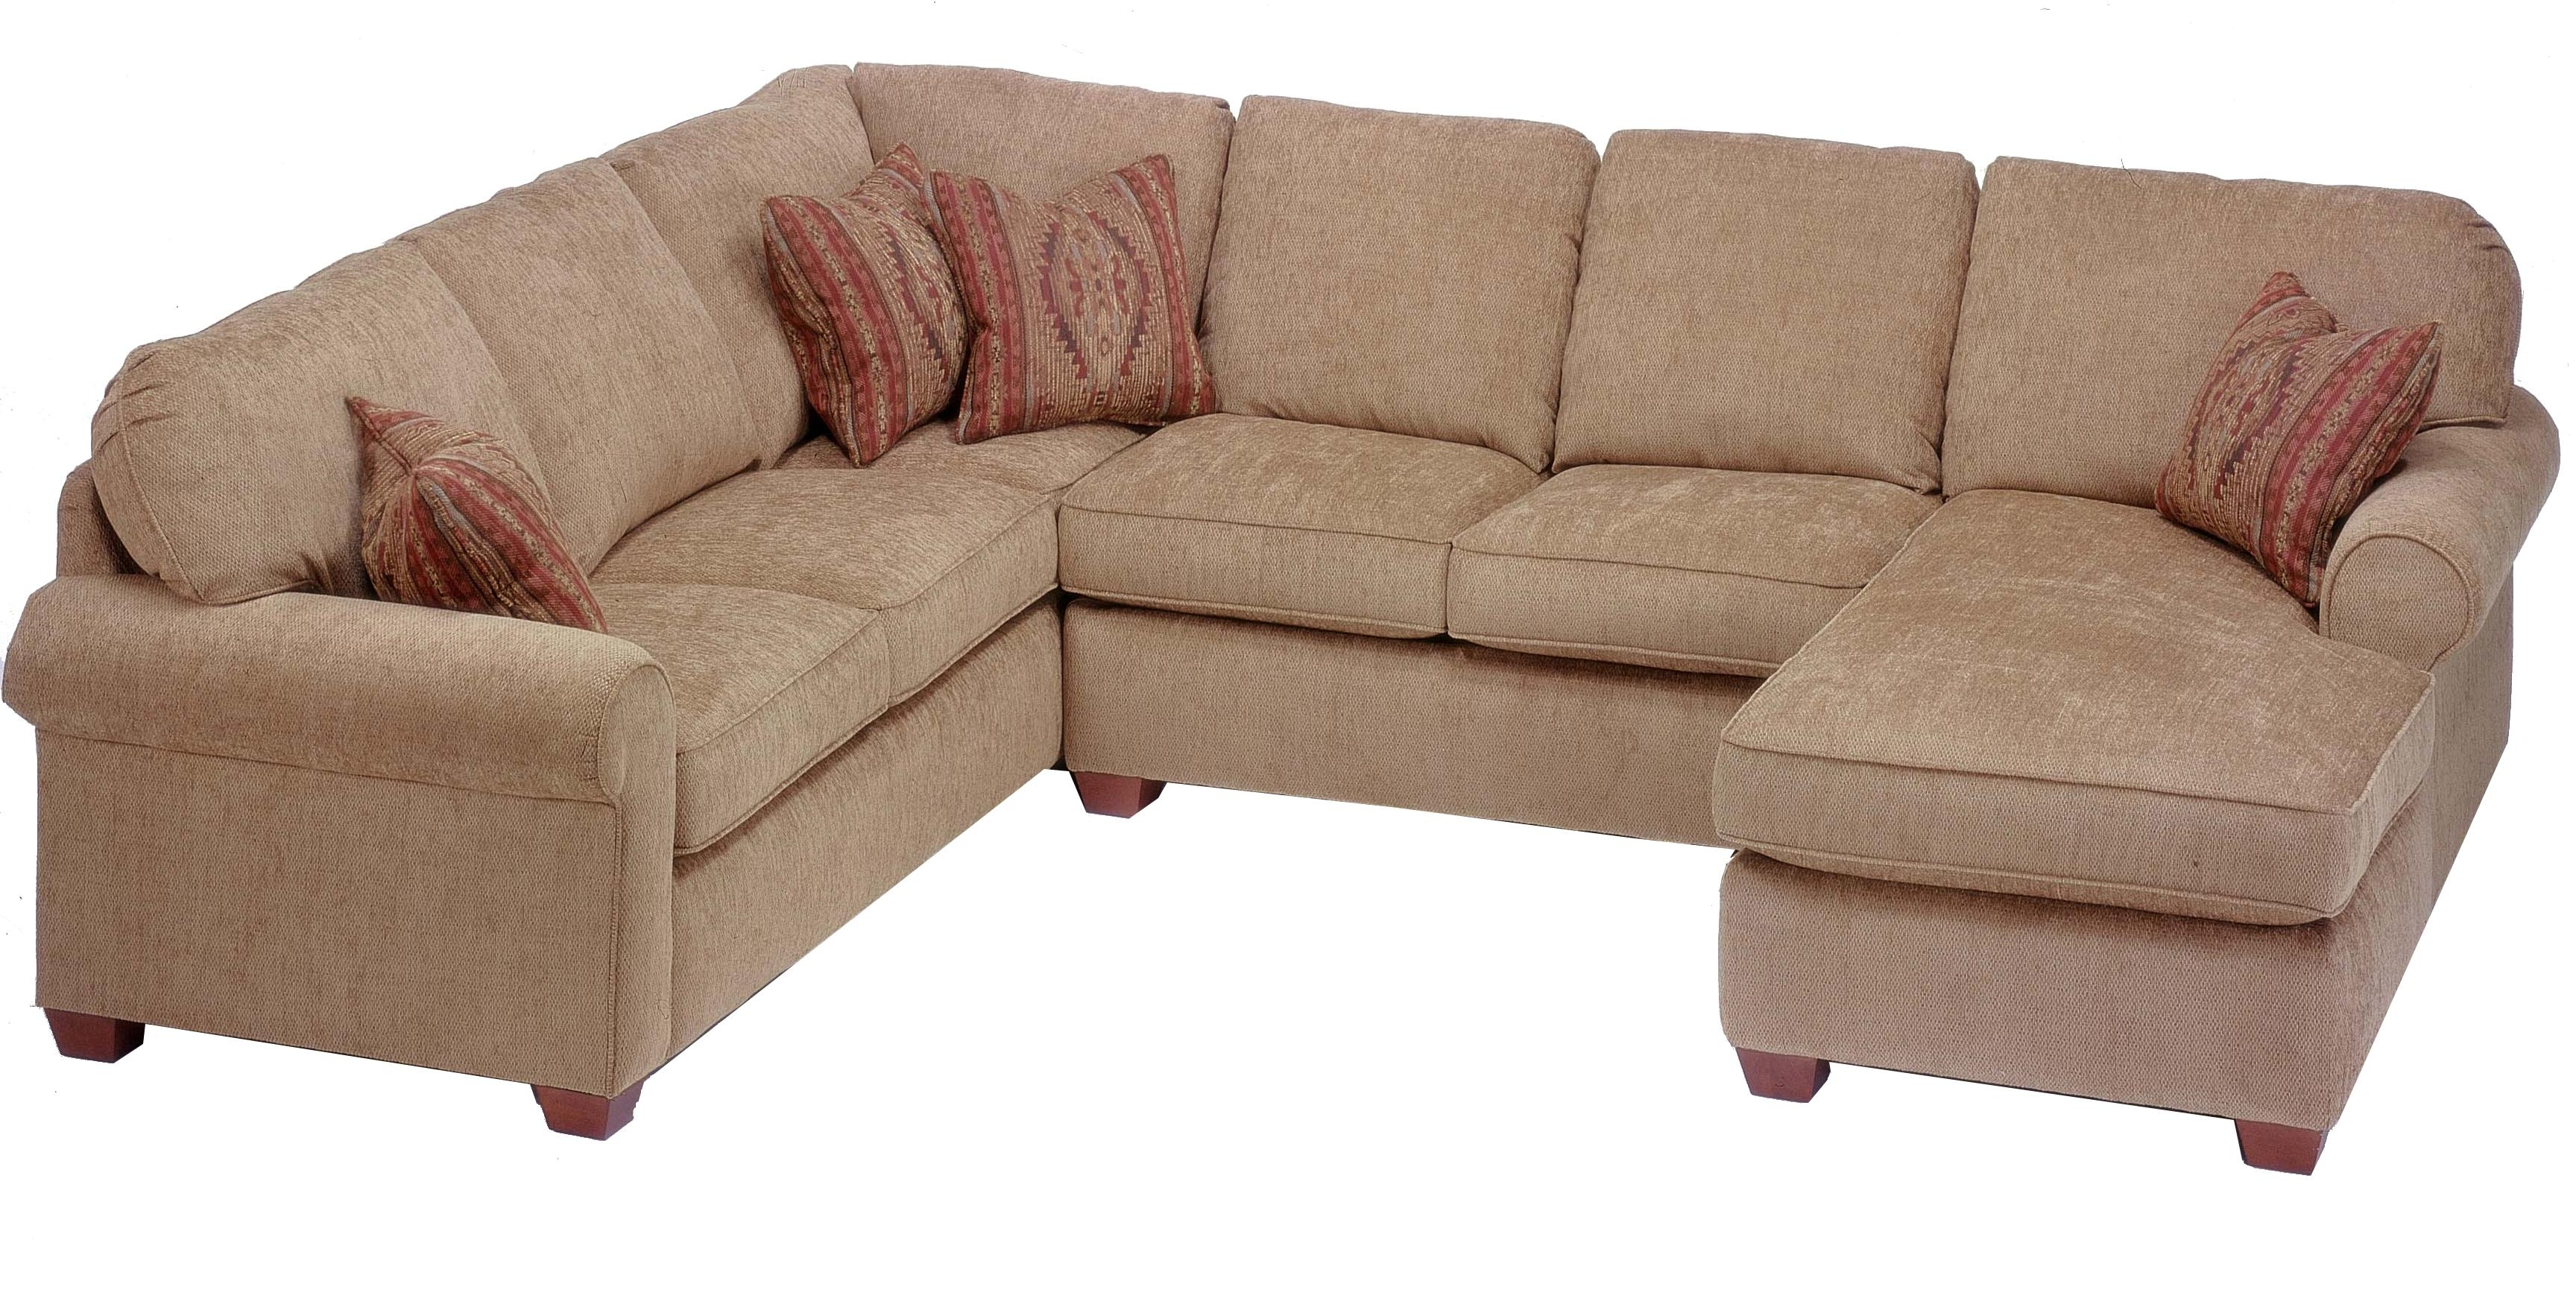 Current Flexsteel Thornton 3 Piece Sectional With Chaise – Ahfa – Sofa For Sectional Sofas At Buffalo Ny (View 12 of 15)